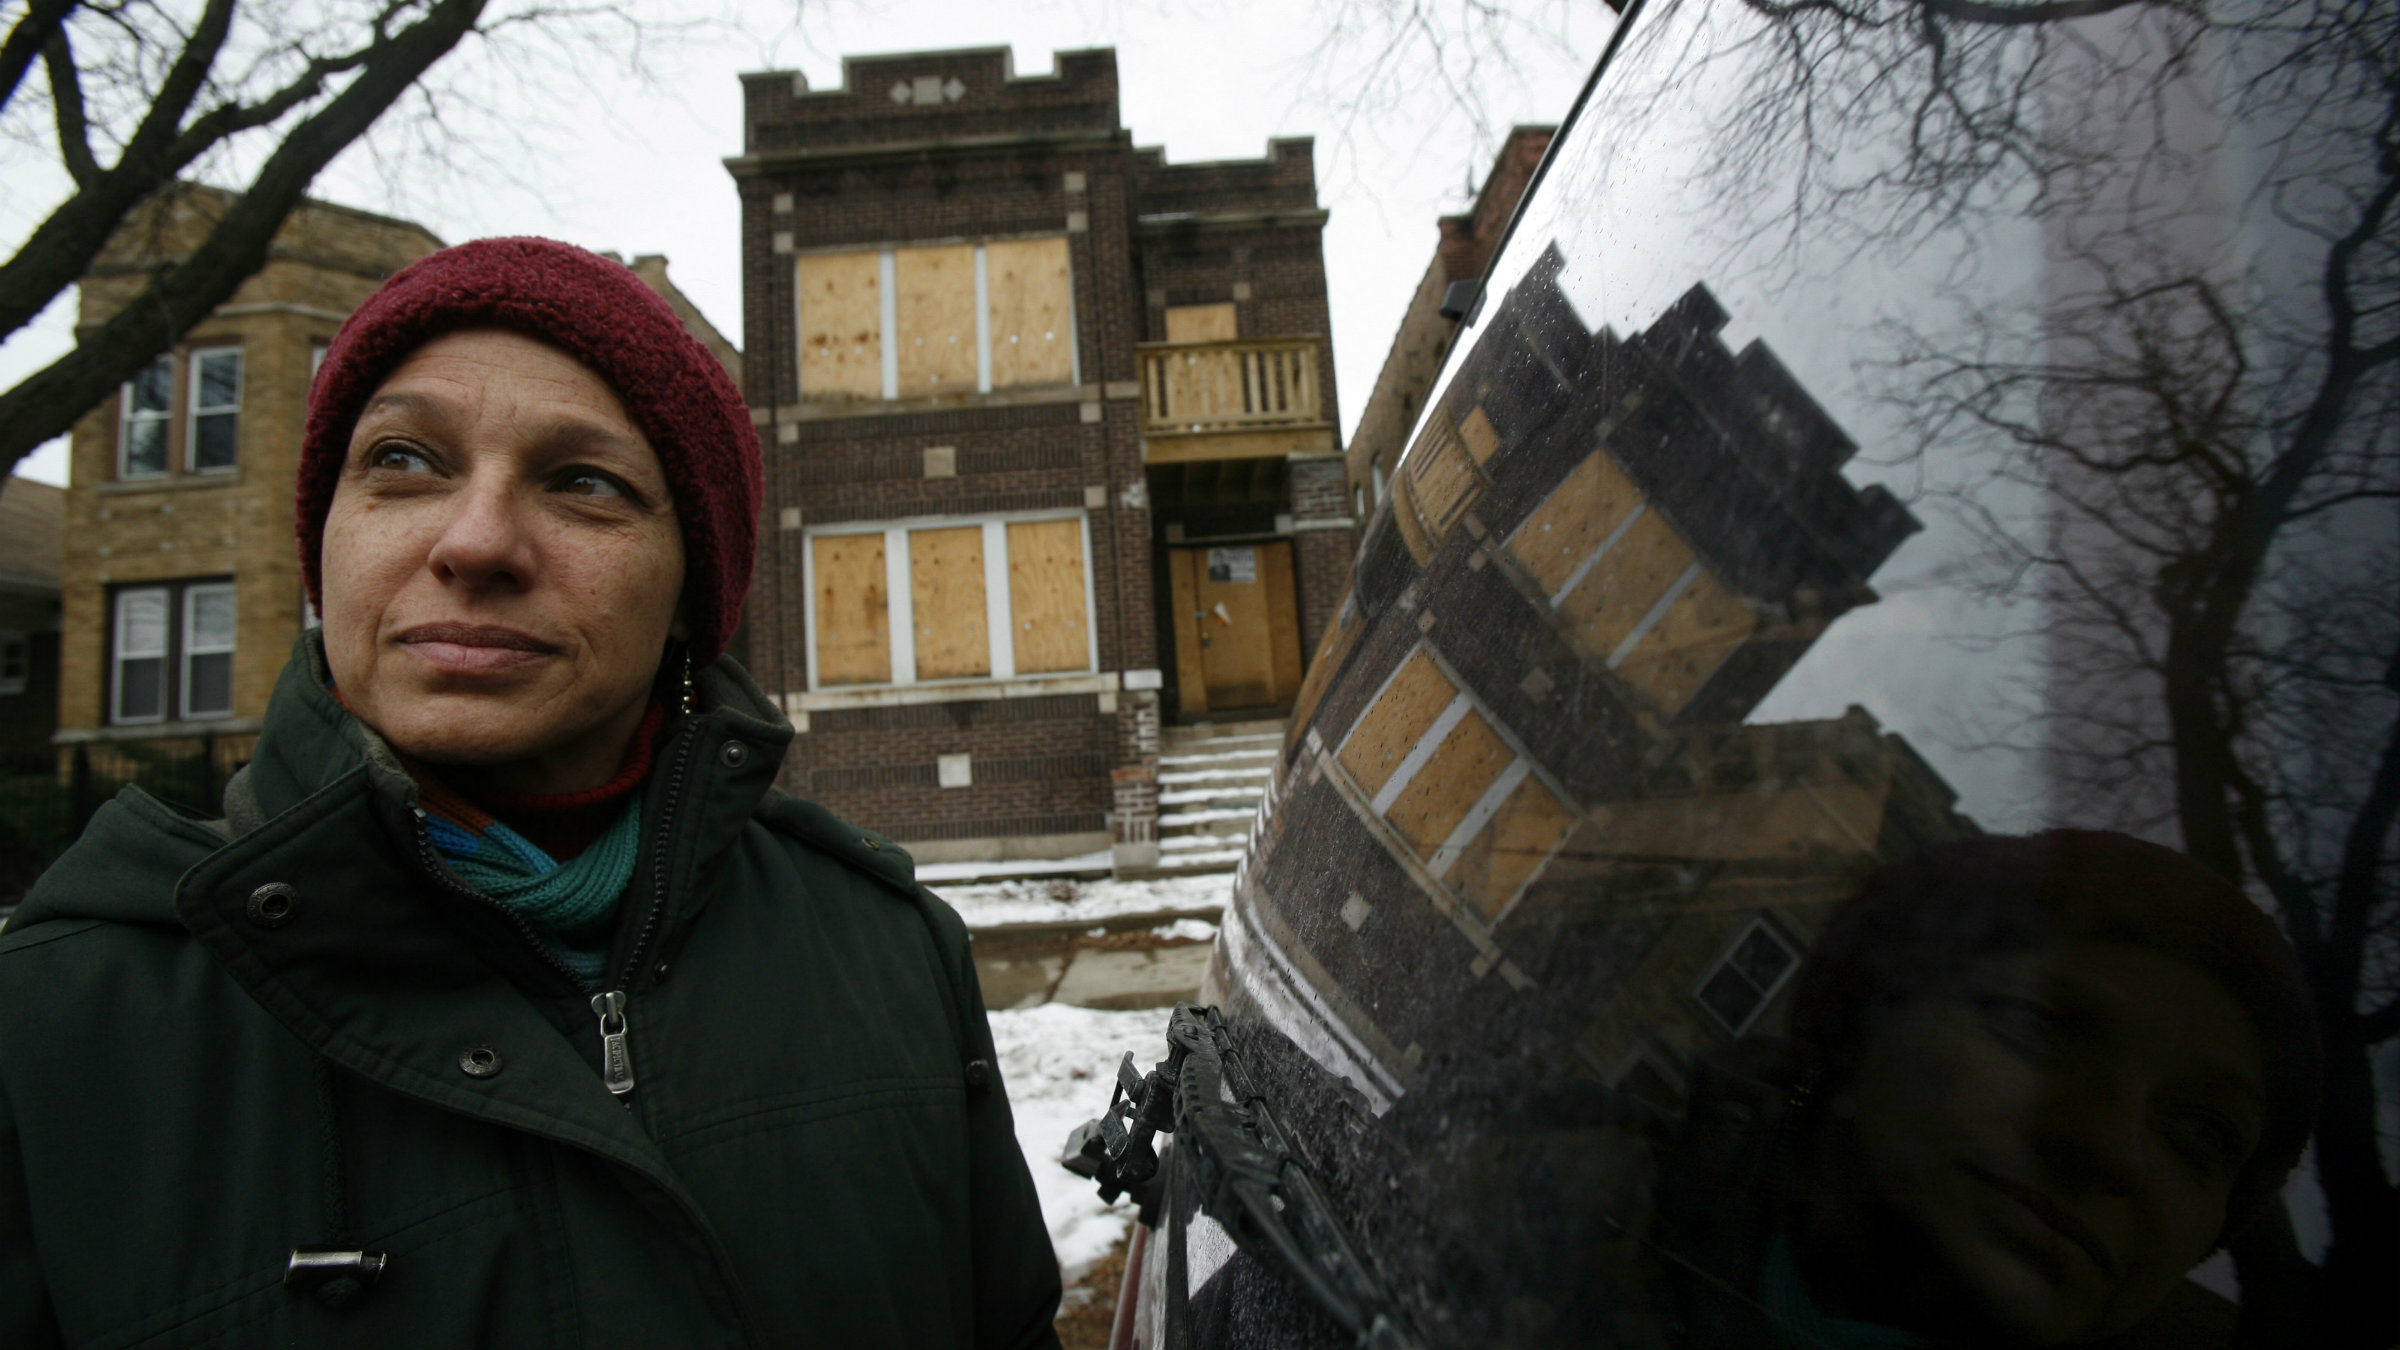 """Greater Southwest Development Corporation Director of Counseling Services Livia Villareal stands before a foreclosed home in Chicago January 28, 2008. No matter who wins the U.S. presidential election in November, their """"to do"""" list will probably include urban renewal. For while the subprime crisis may force the U.S. economy into recession, it has already brought boarded-up homes and broken dreams to thousands of minority families inner cities. TO MATCH FEATURE USA-HOUSING/MINORITIES REUTERS/John Gress (UNITED STATES)"""